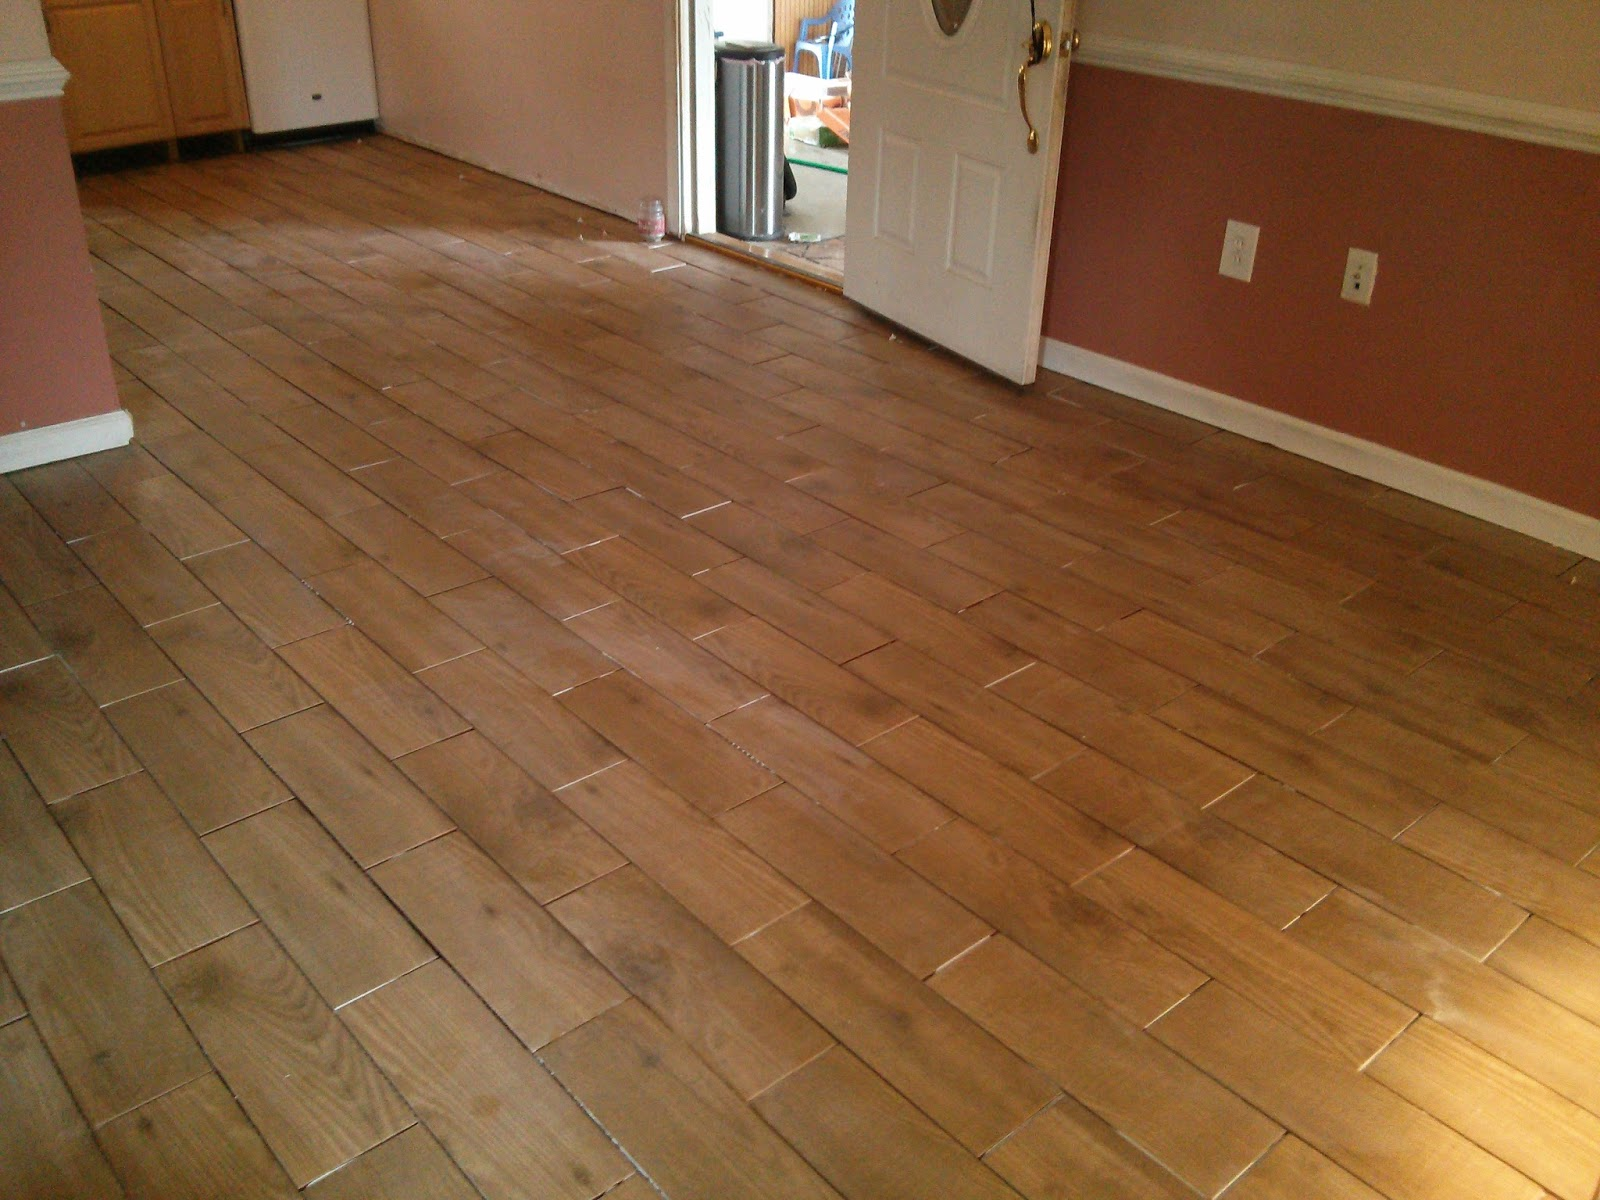 Floor Installation Photos Wood Look Porcelain Tile In Levittown